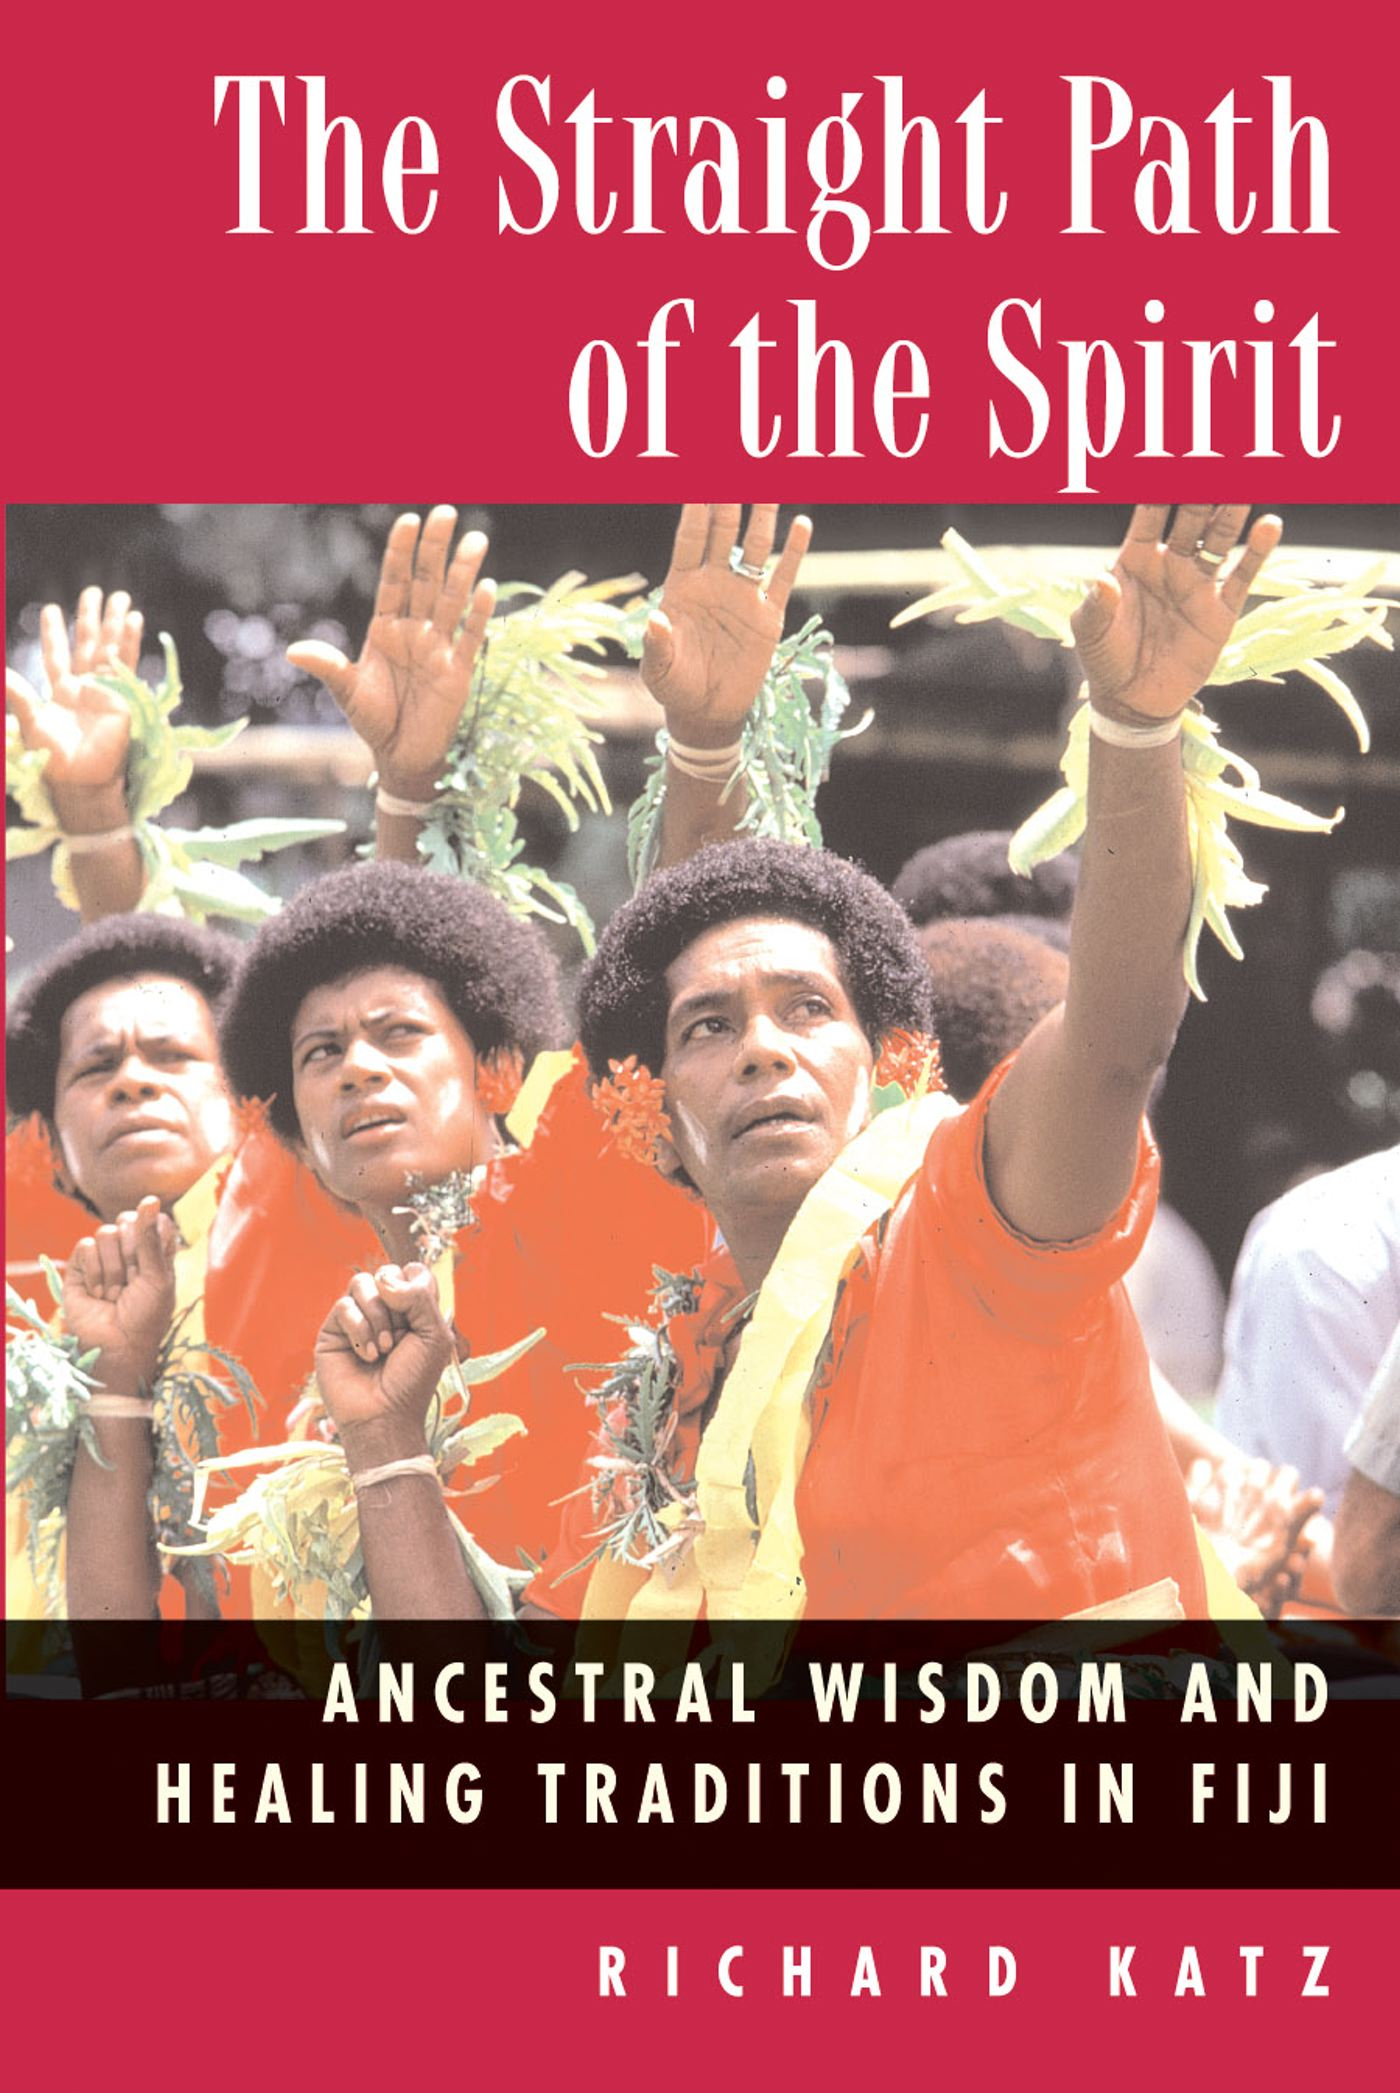 The-straight-path-of-the-spirit-9780892817672_hr